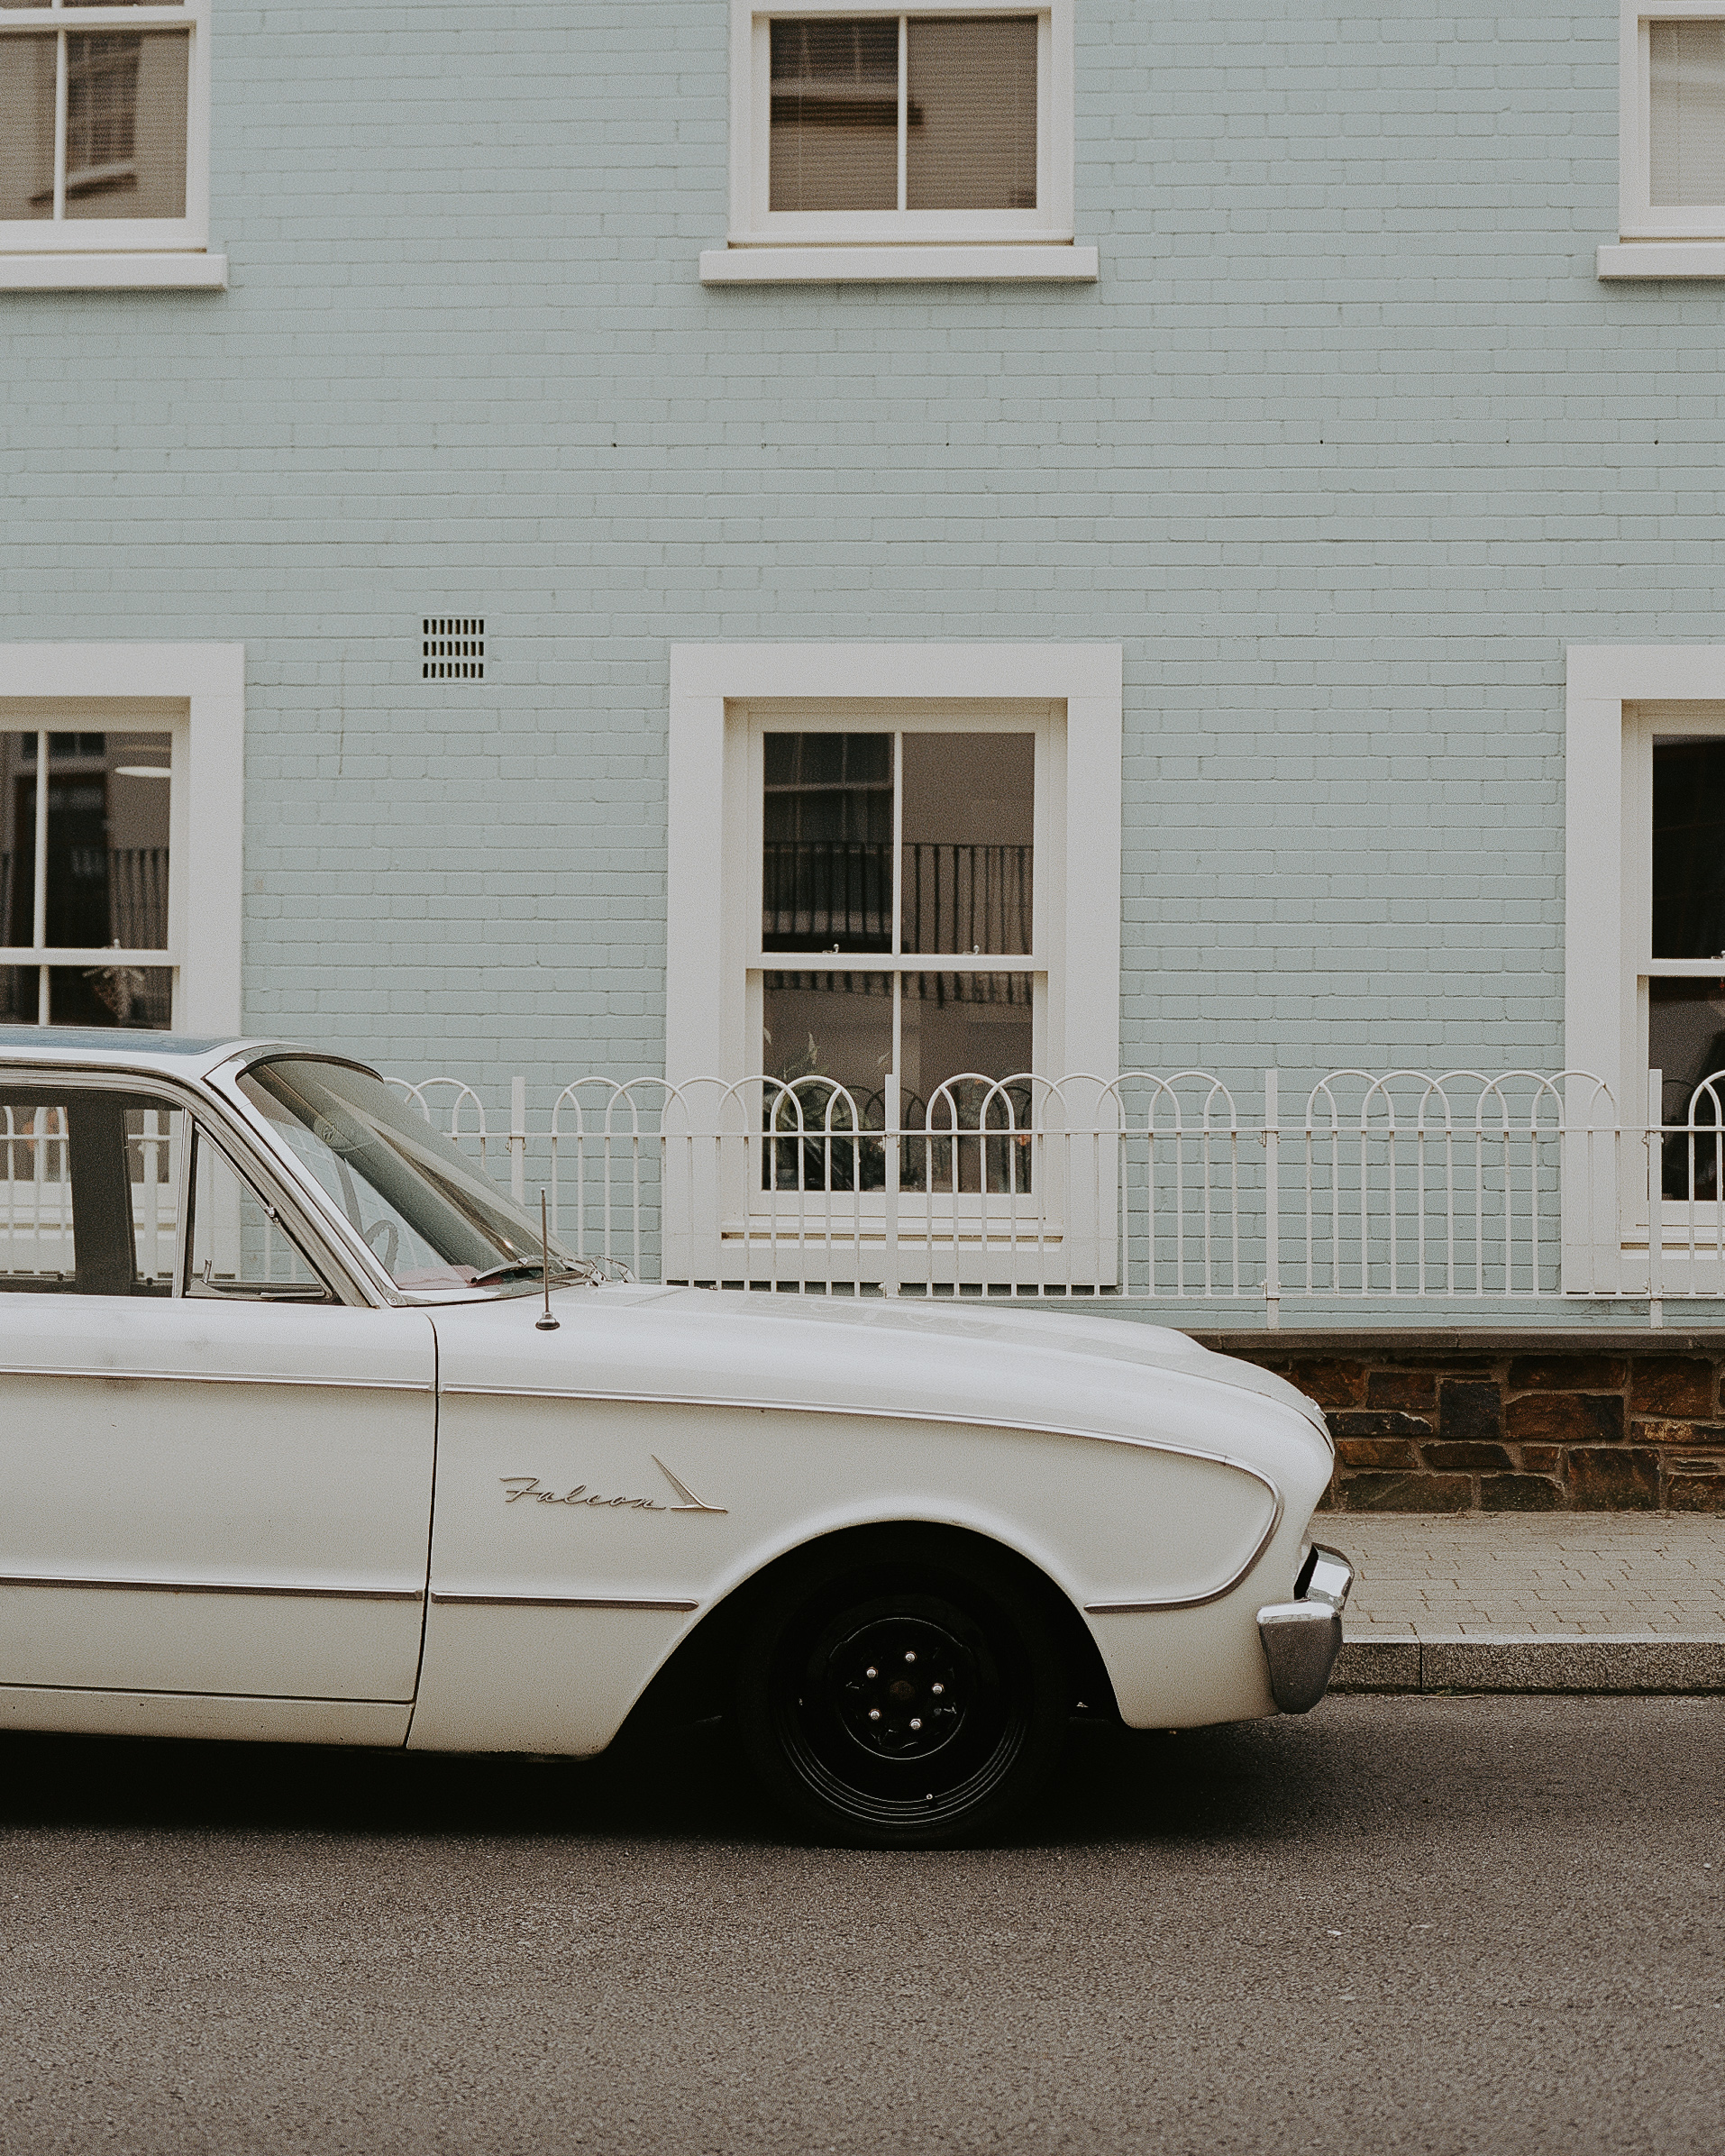 Talk about dream cars.. - The Ford Falcon chilling in a street in Cornwall.